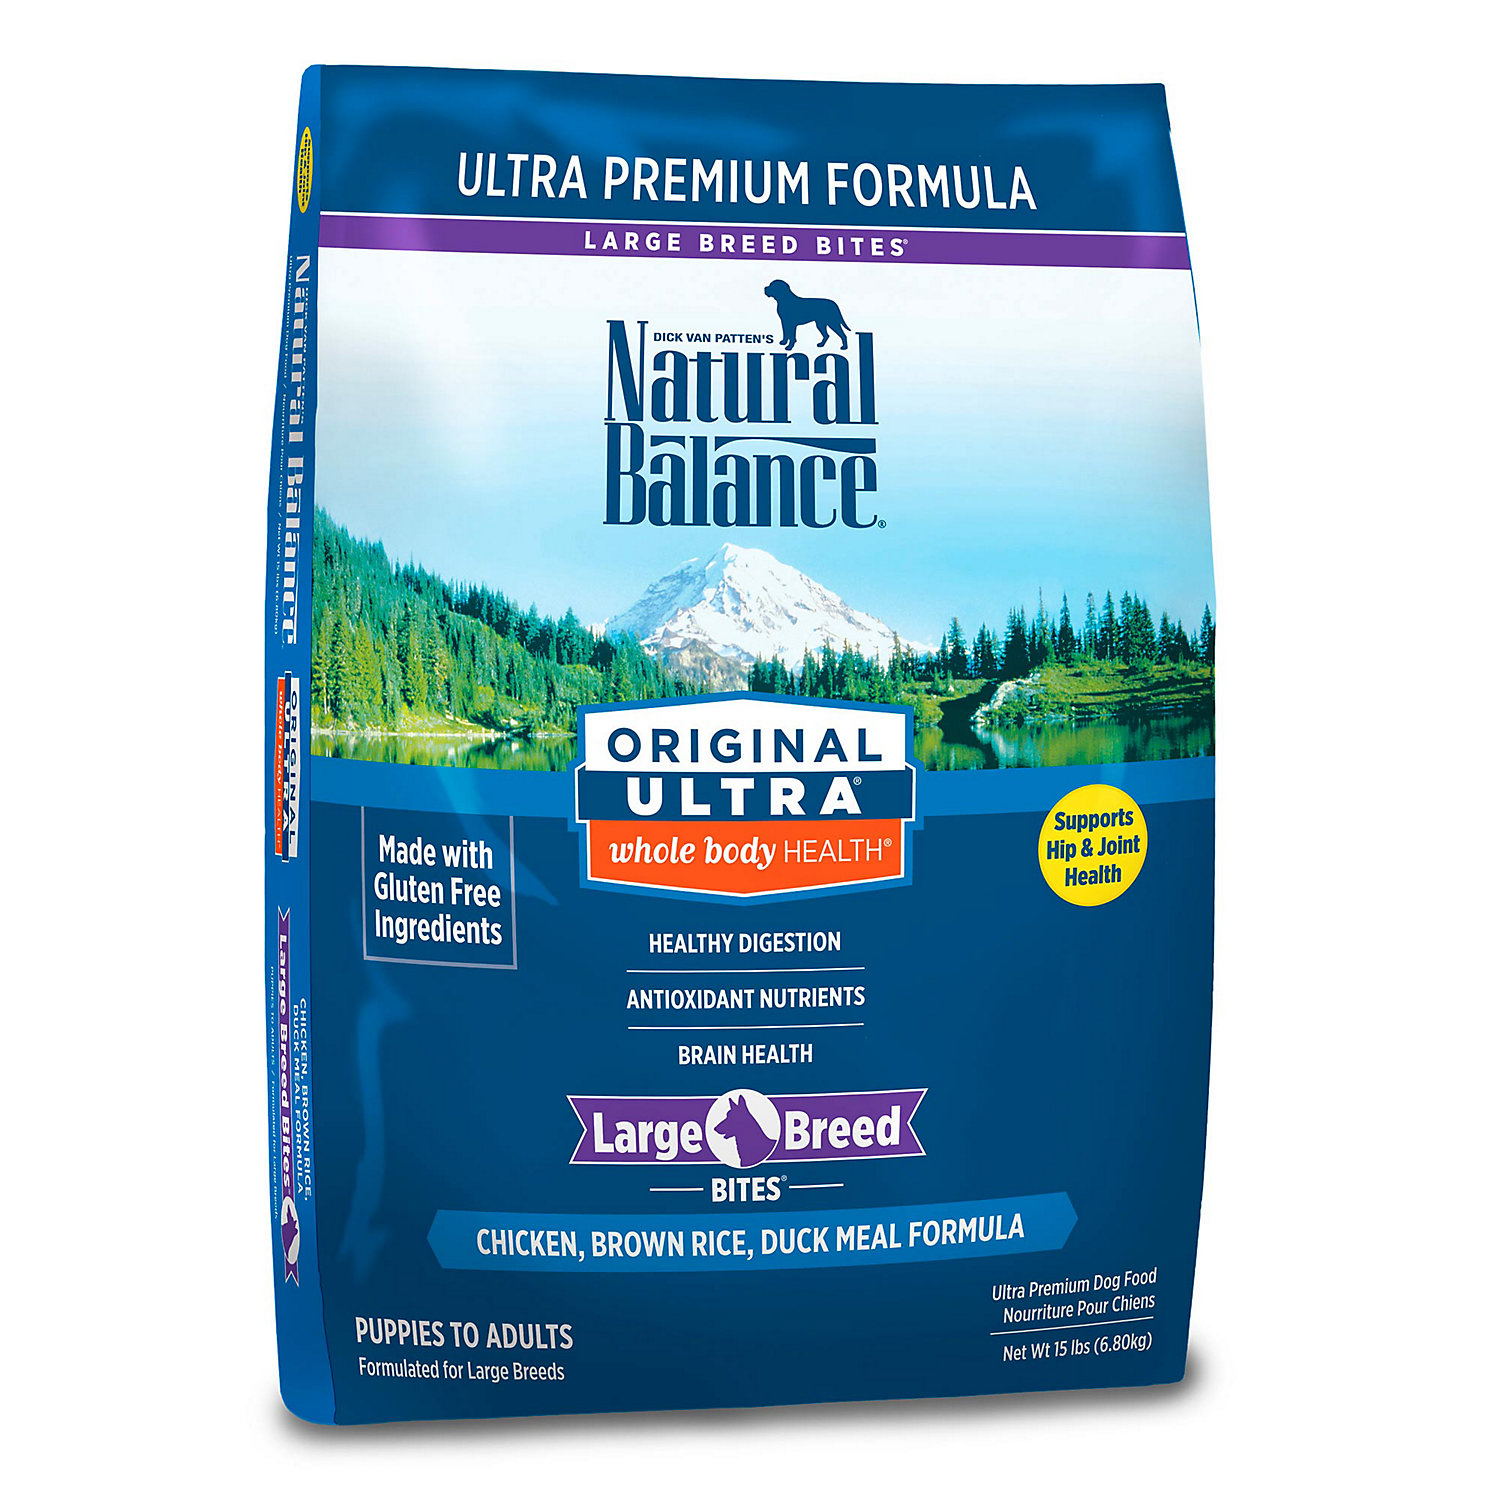 Natural Balance Original Ultra Whole Body Health Large Breed Chicken Brown Rice Duck Meal Dog Food 15 Lbs.